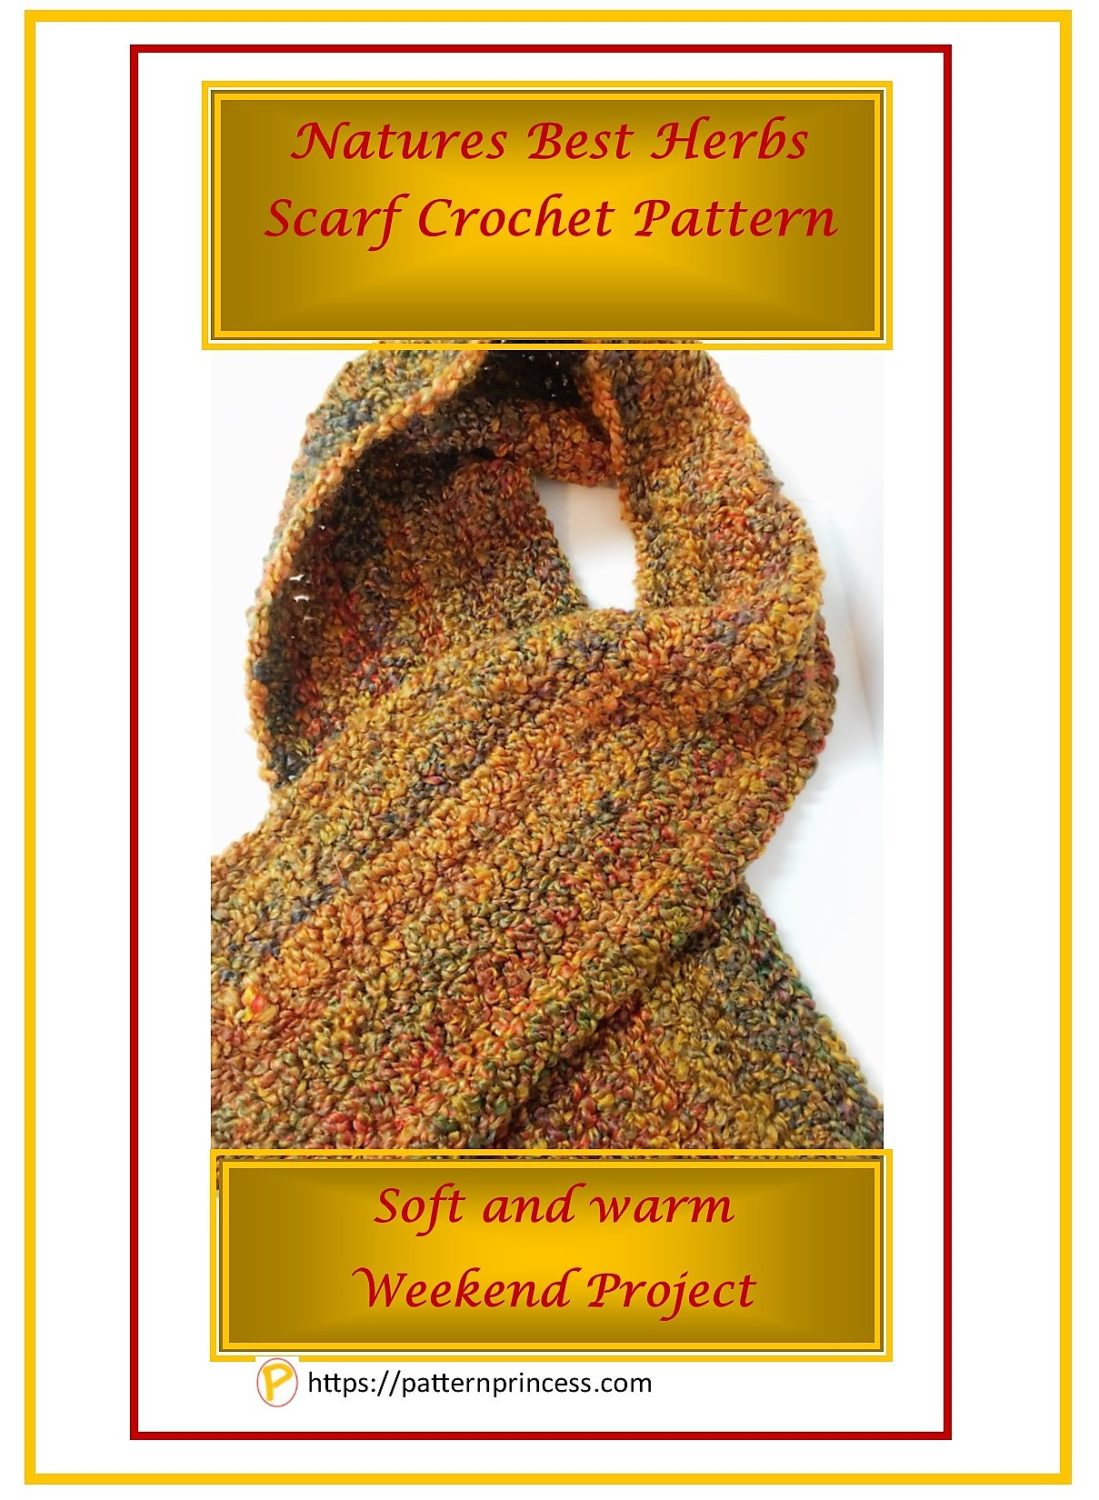 Natures Best Herbs Scarf Crochet Pattern 1